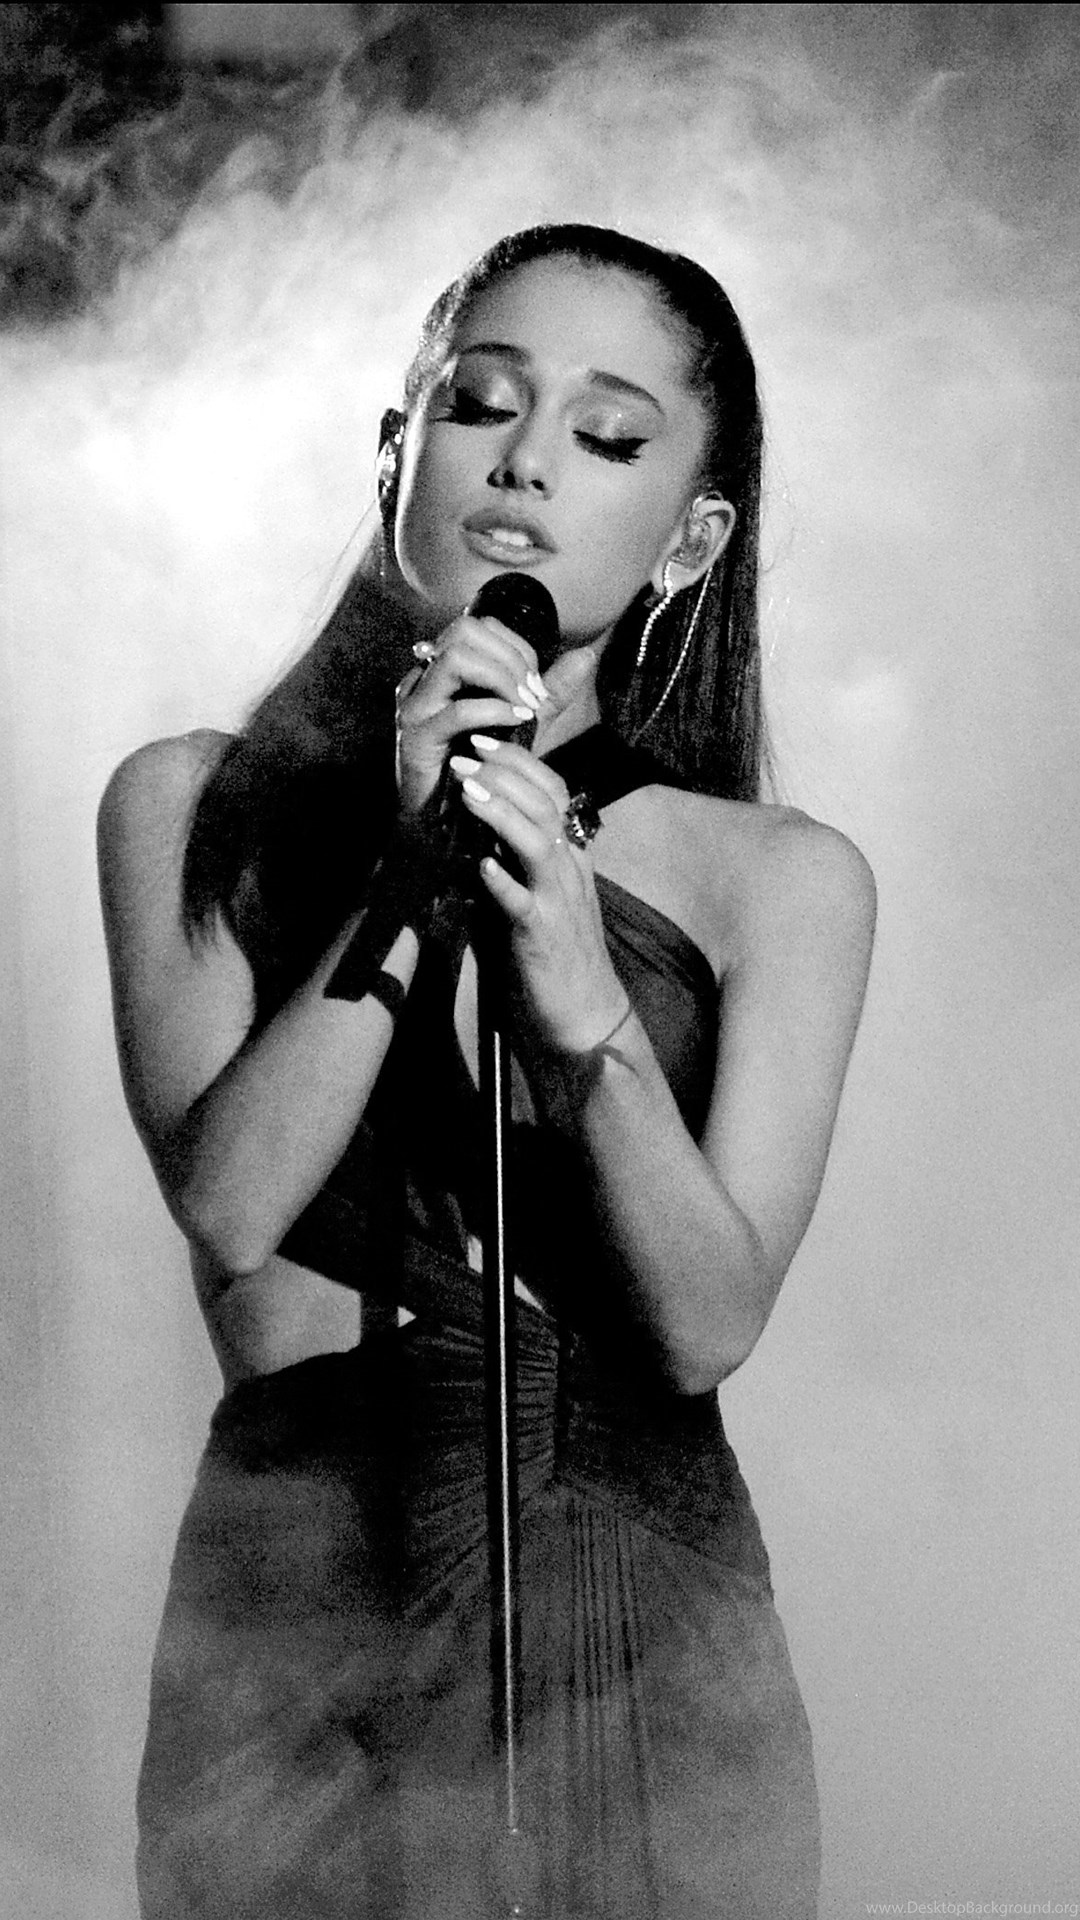 New Beauty Ariana Grande Wallpapers HQ Resolution Desktop Background